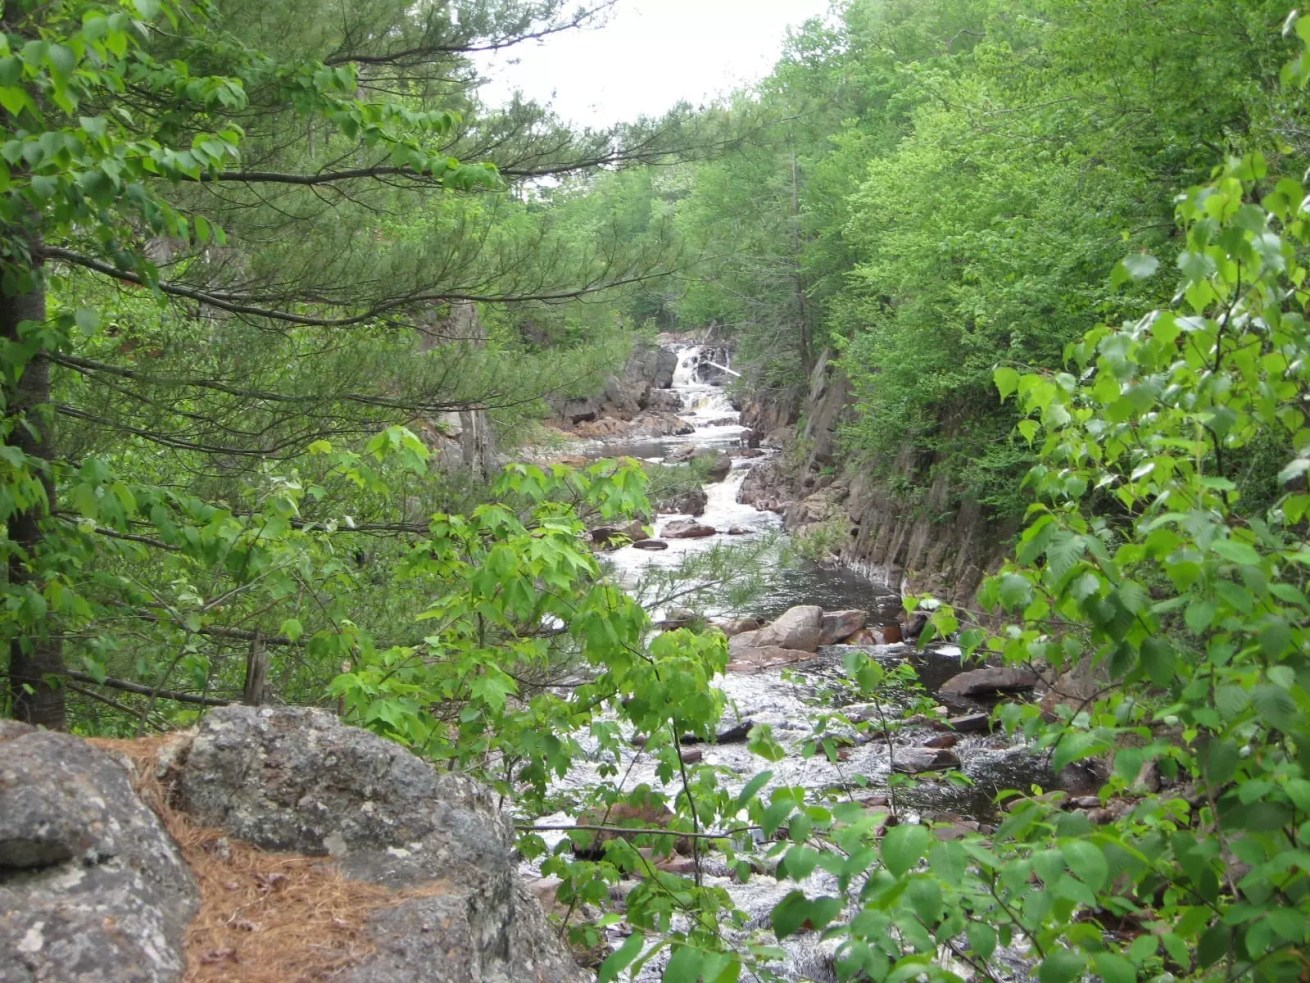 Gleasmans Falls, Lewis County, New York